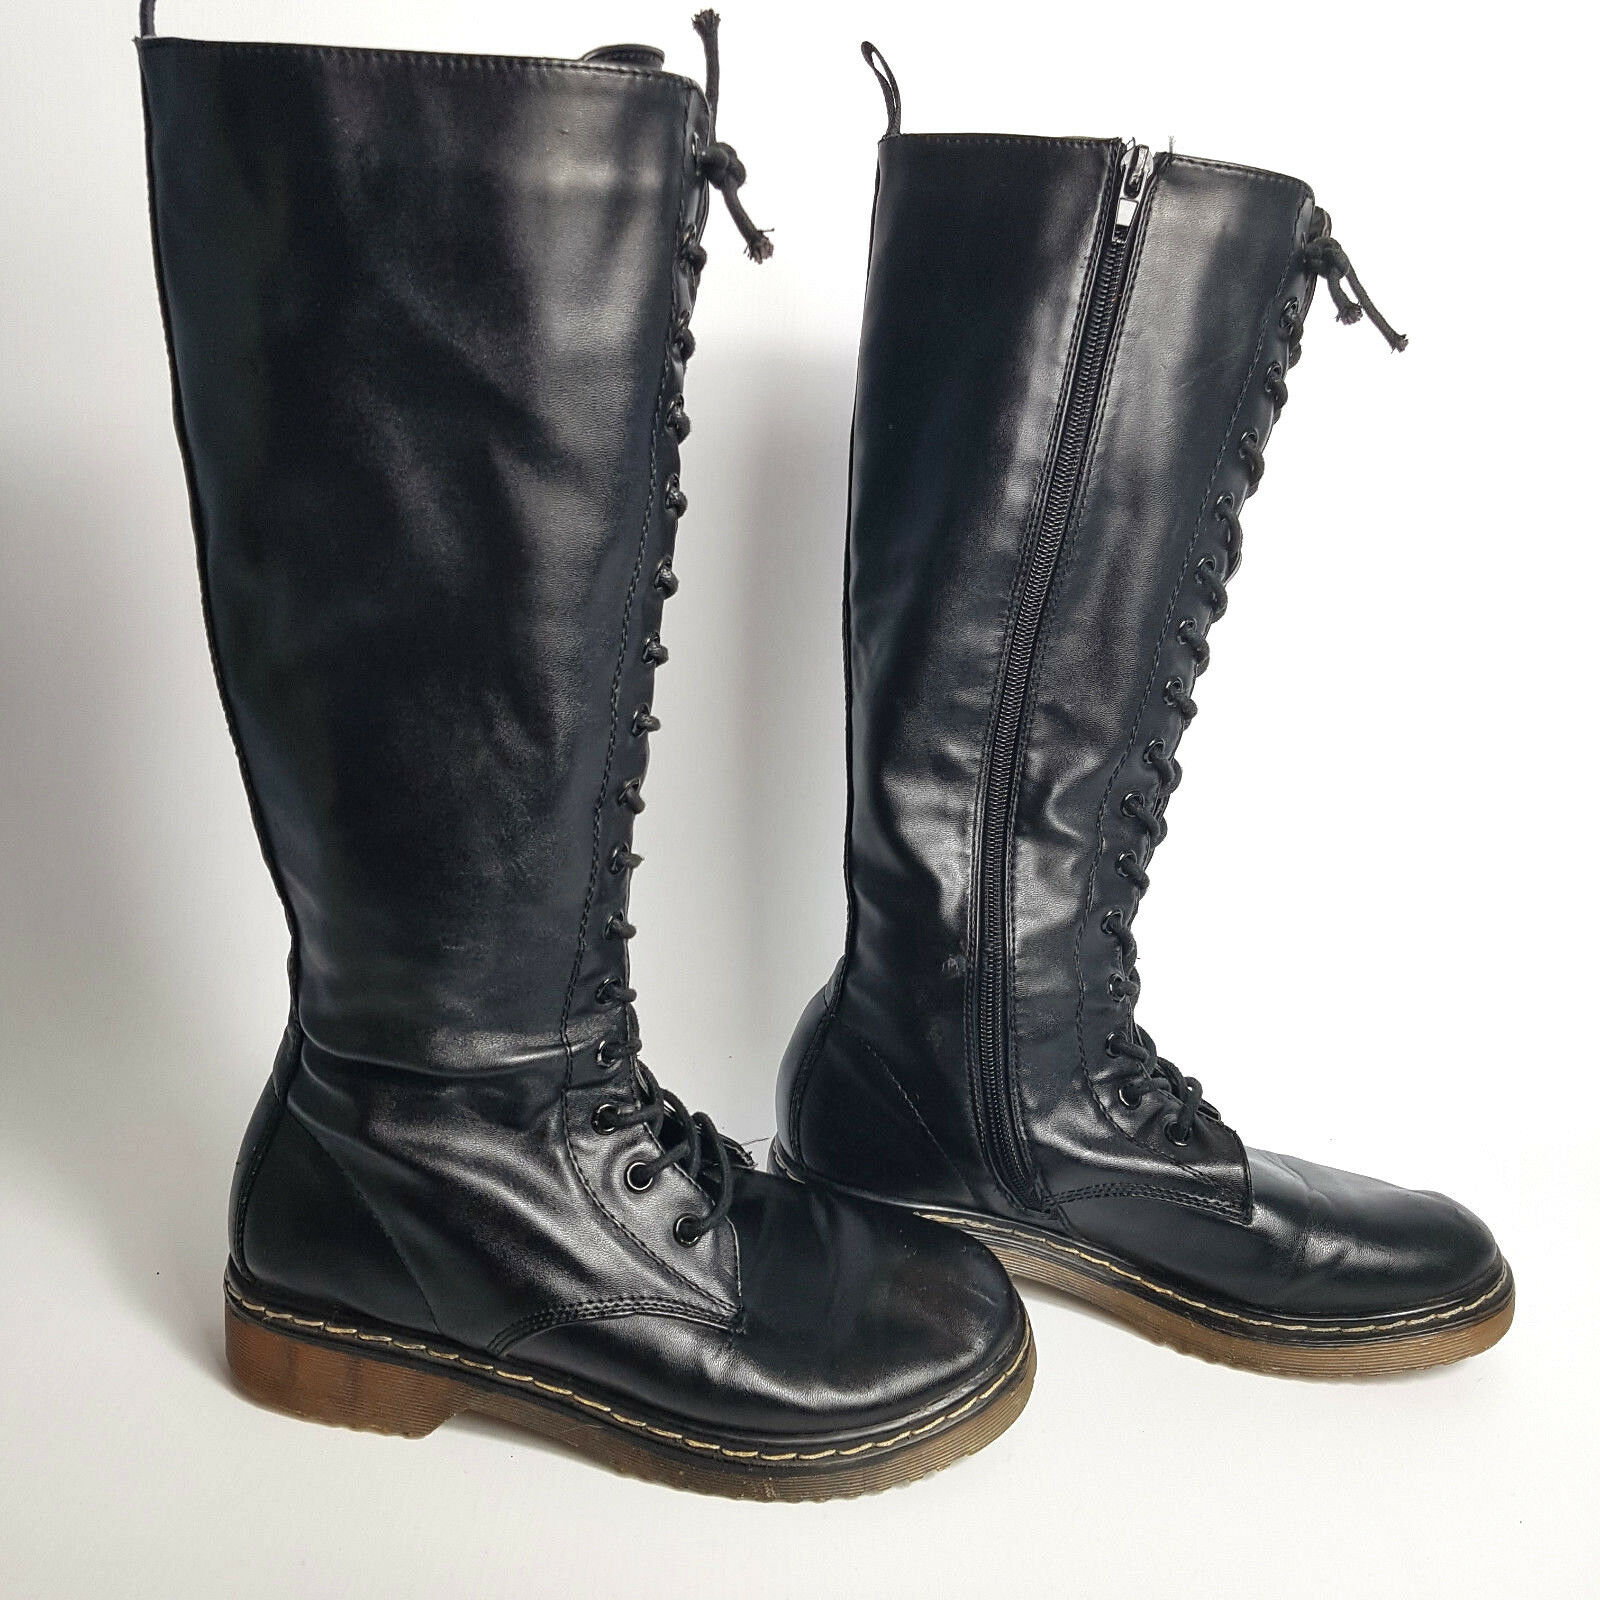 Truffle Rebellious Womens Knee High Lace Up Zip Combat Boots Size 3-4 Good cond